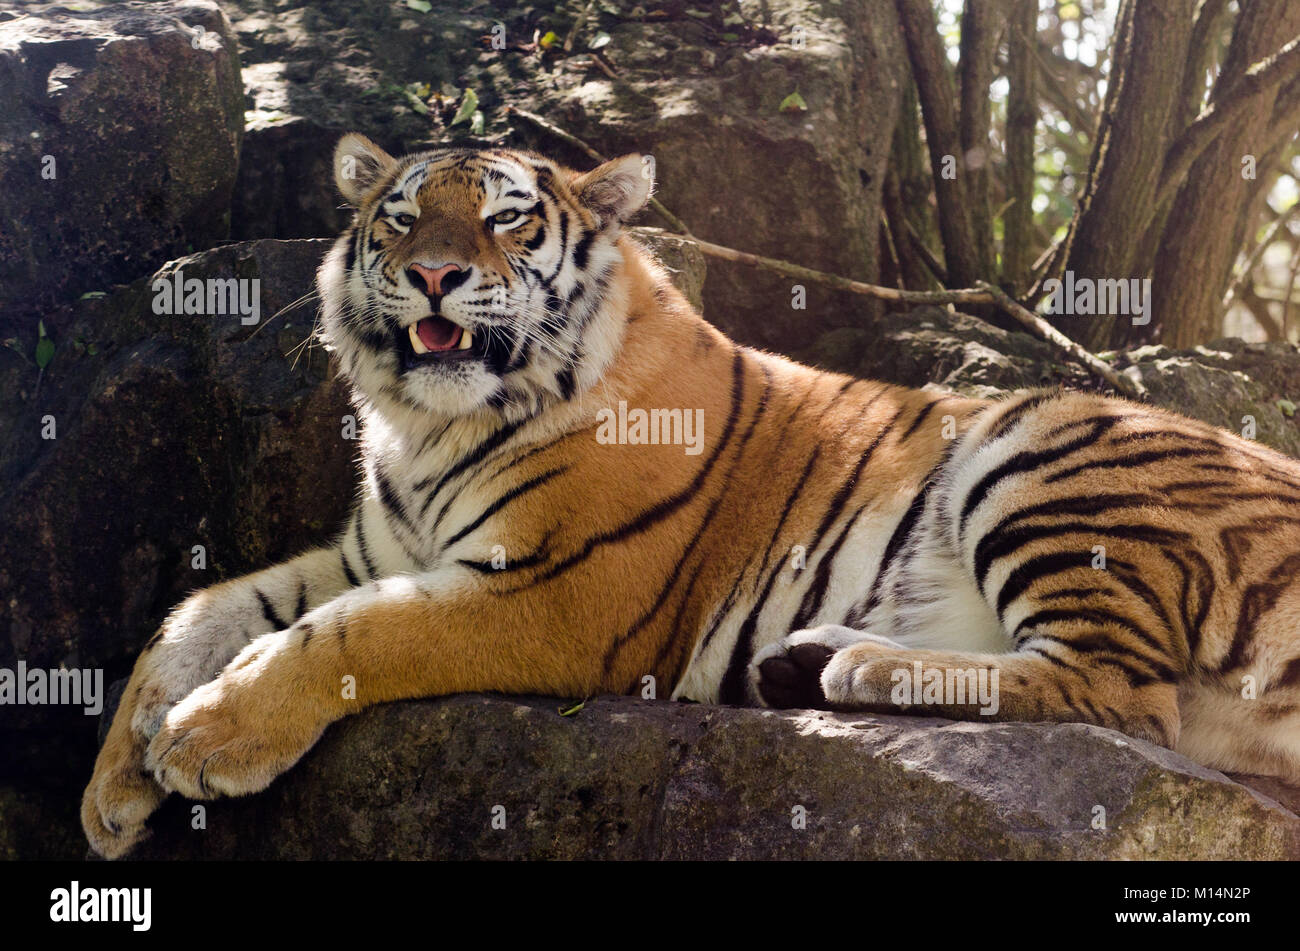 An Amur tiger prowling in the undergrowth - Stock Image